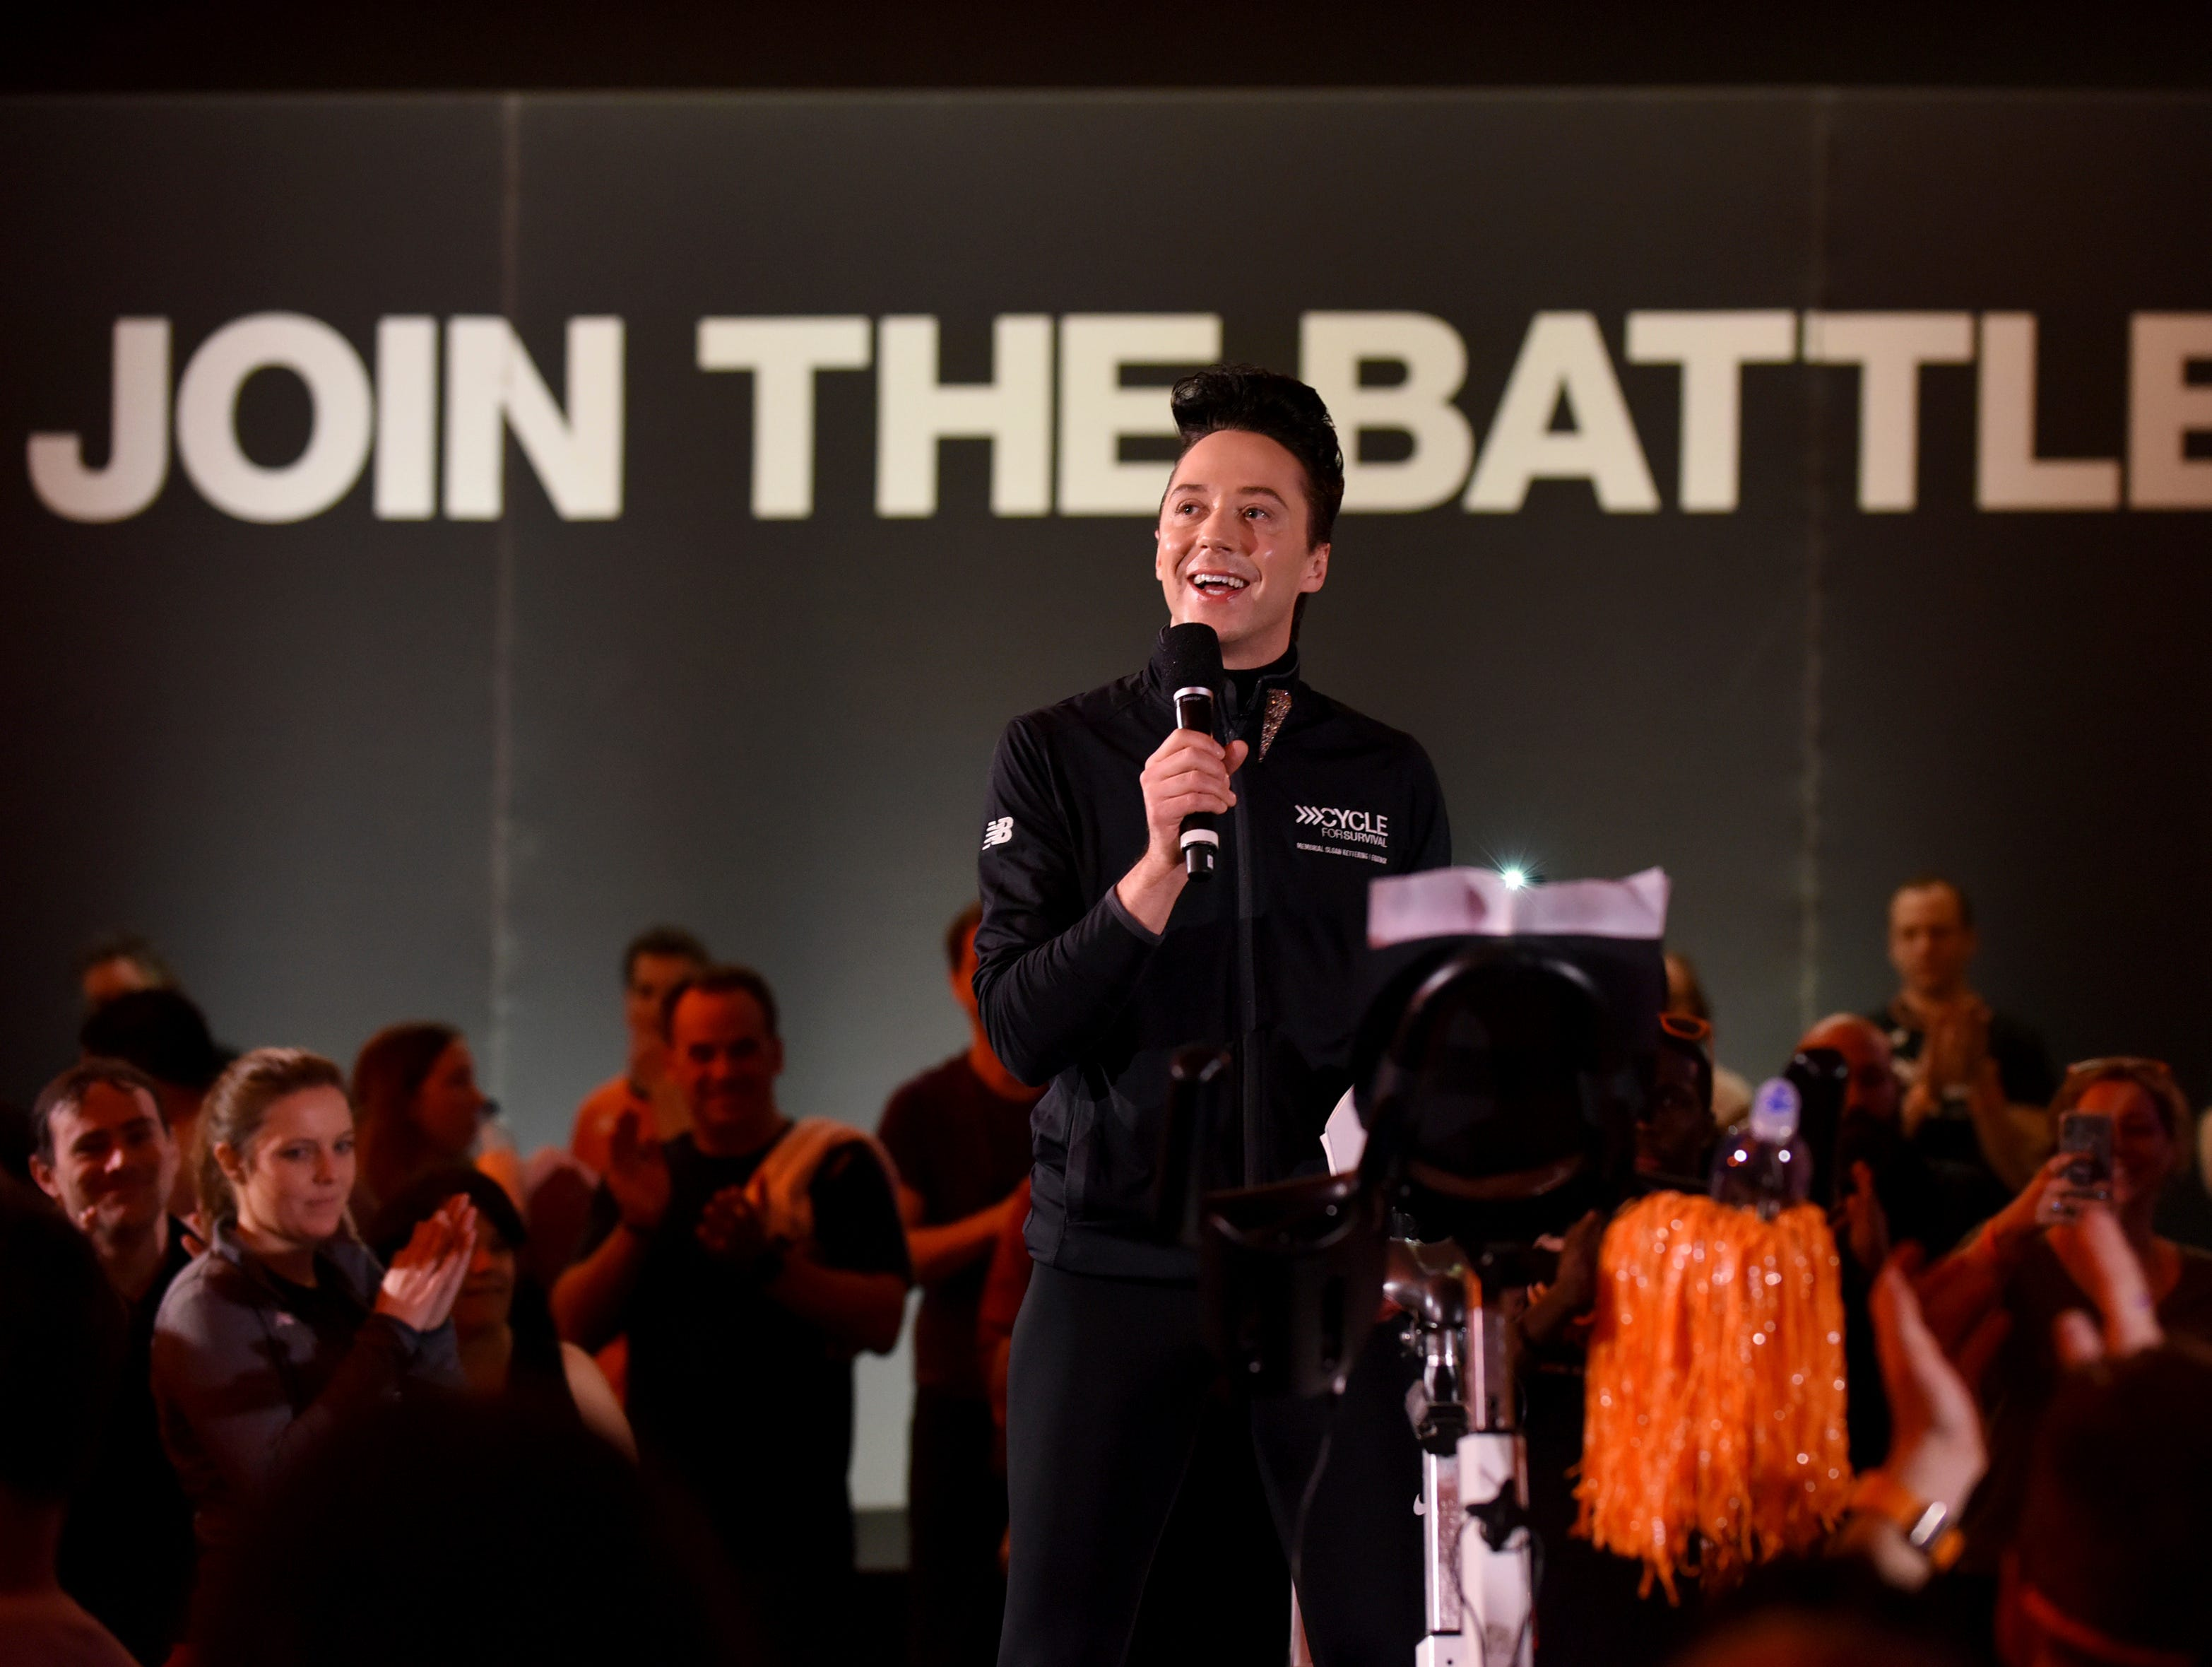 Johnny Weir shows his support for the movement to beat rare cancers at a Cycle for Survival event in New York City on Sunday, March 10, 2019.